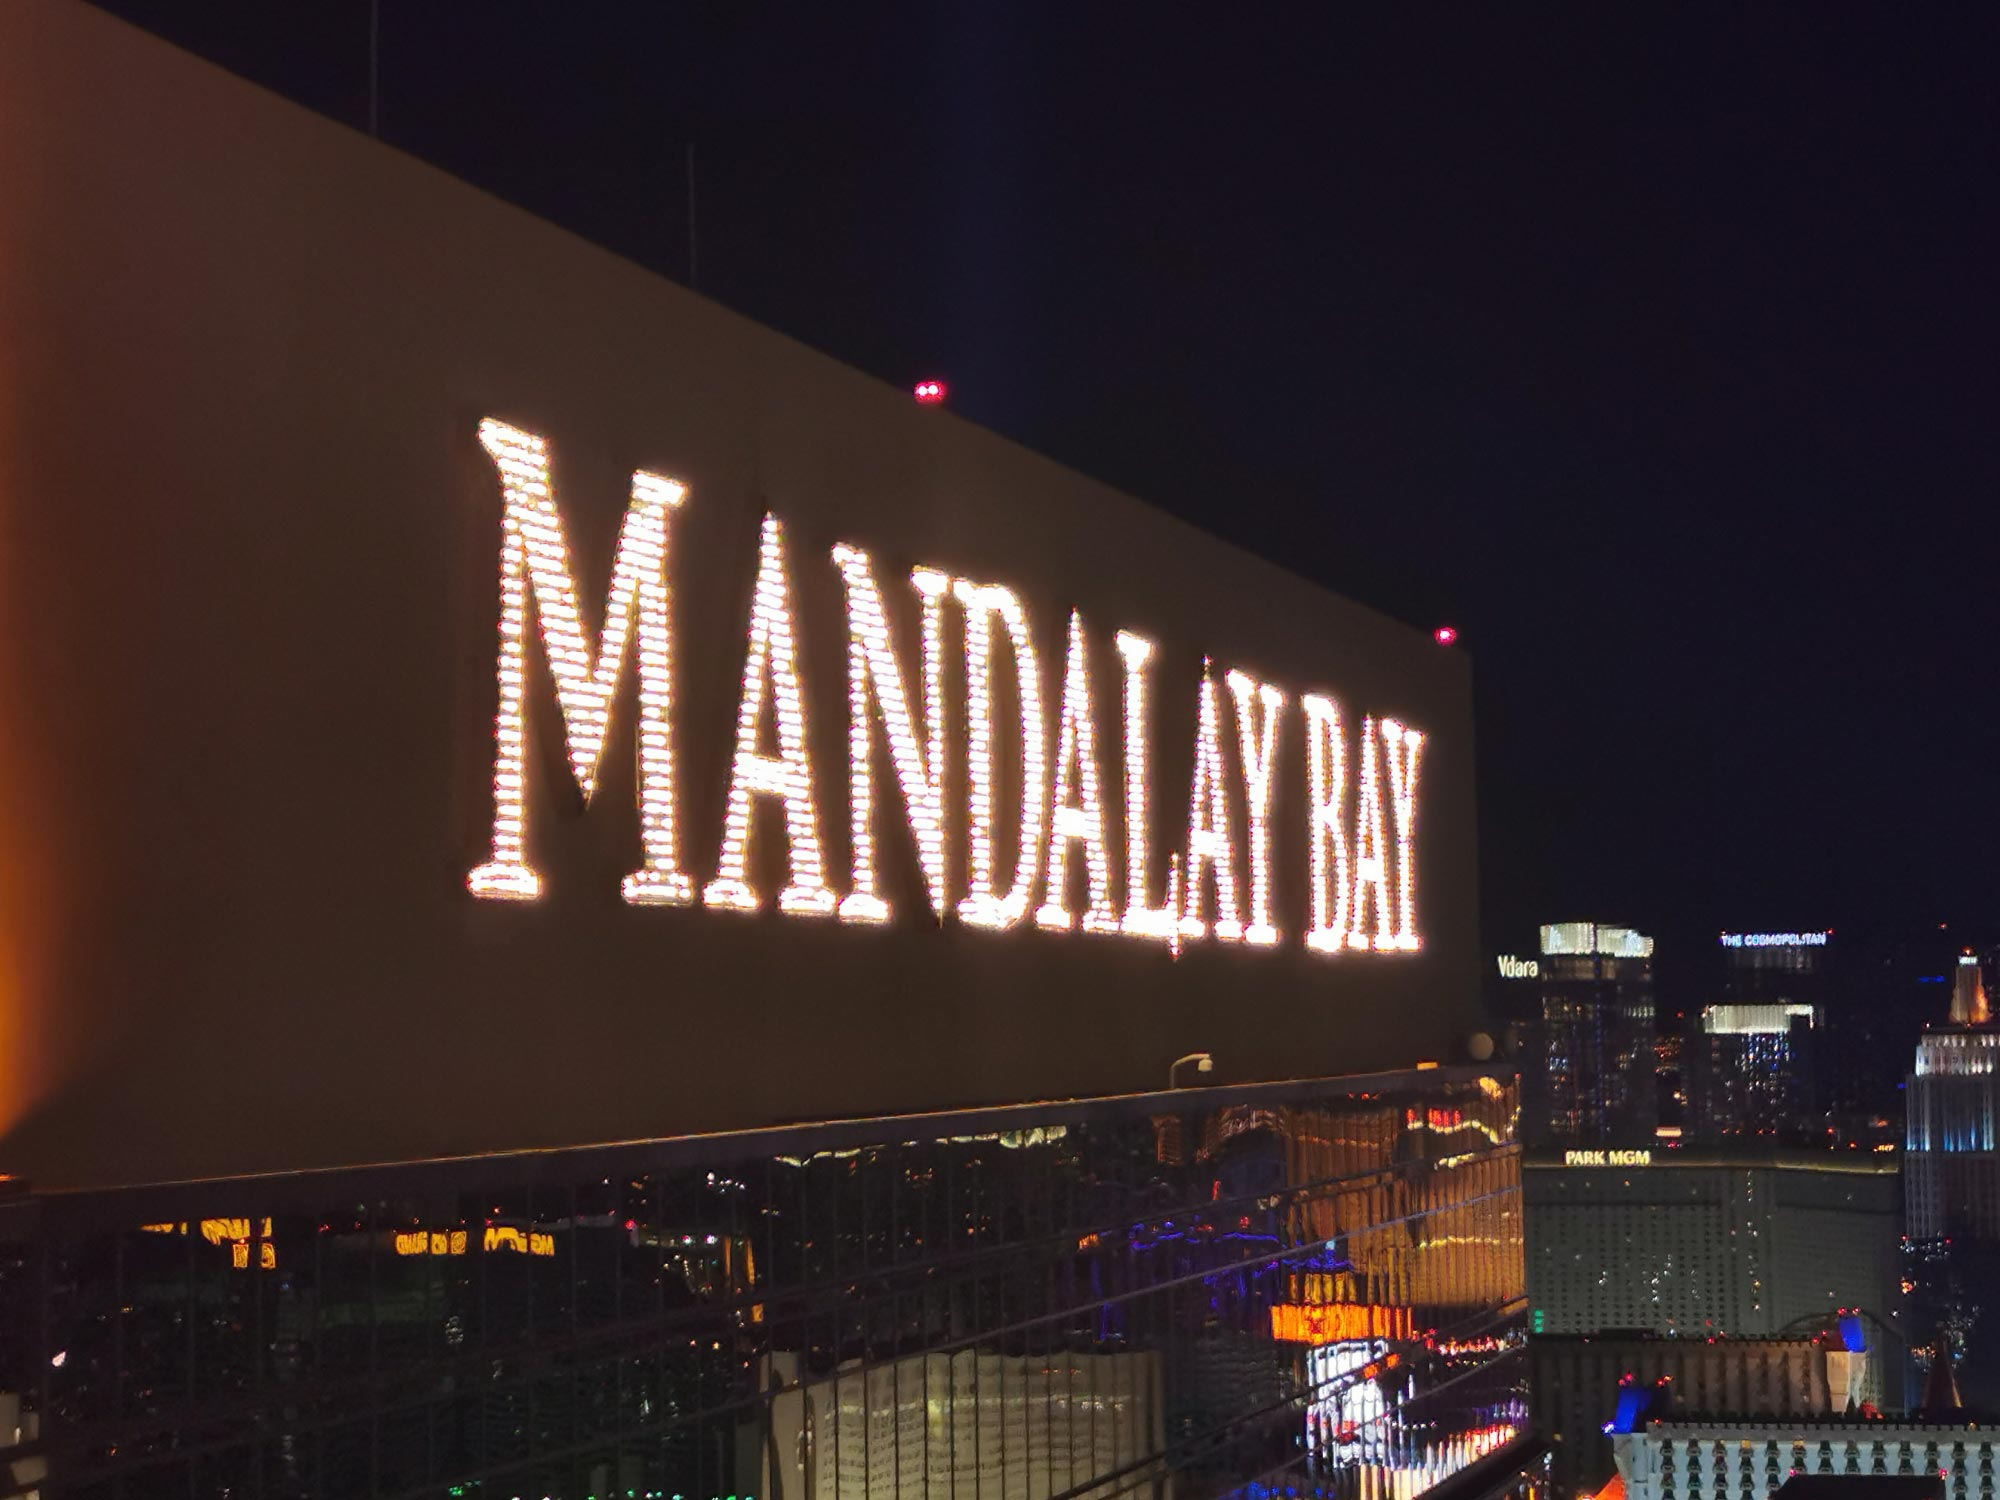 Mandalay Bay at night